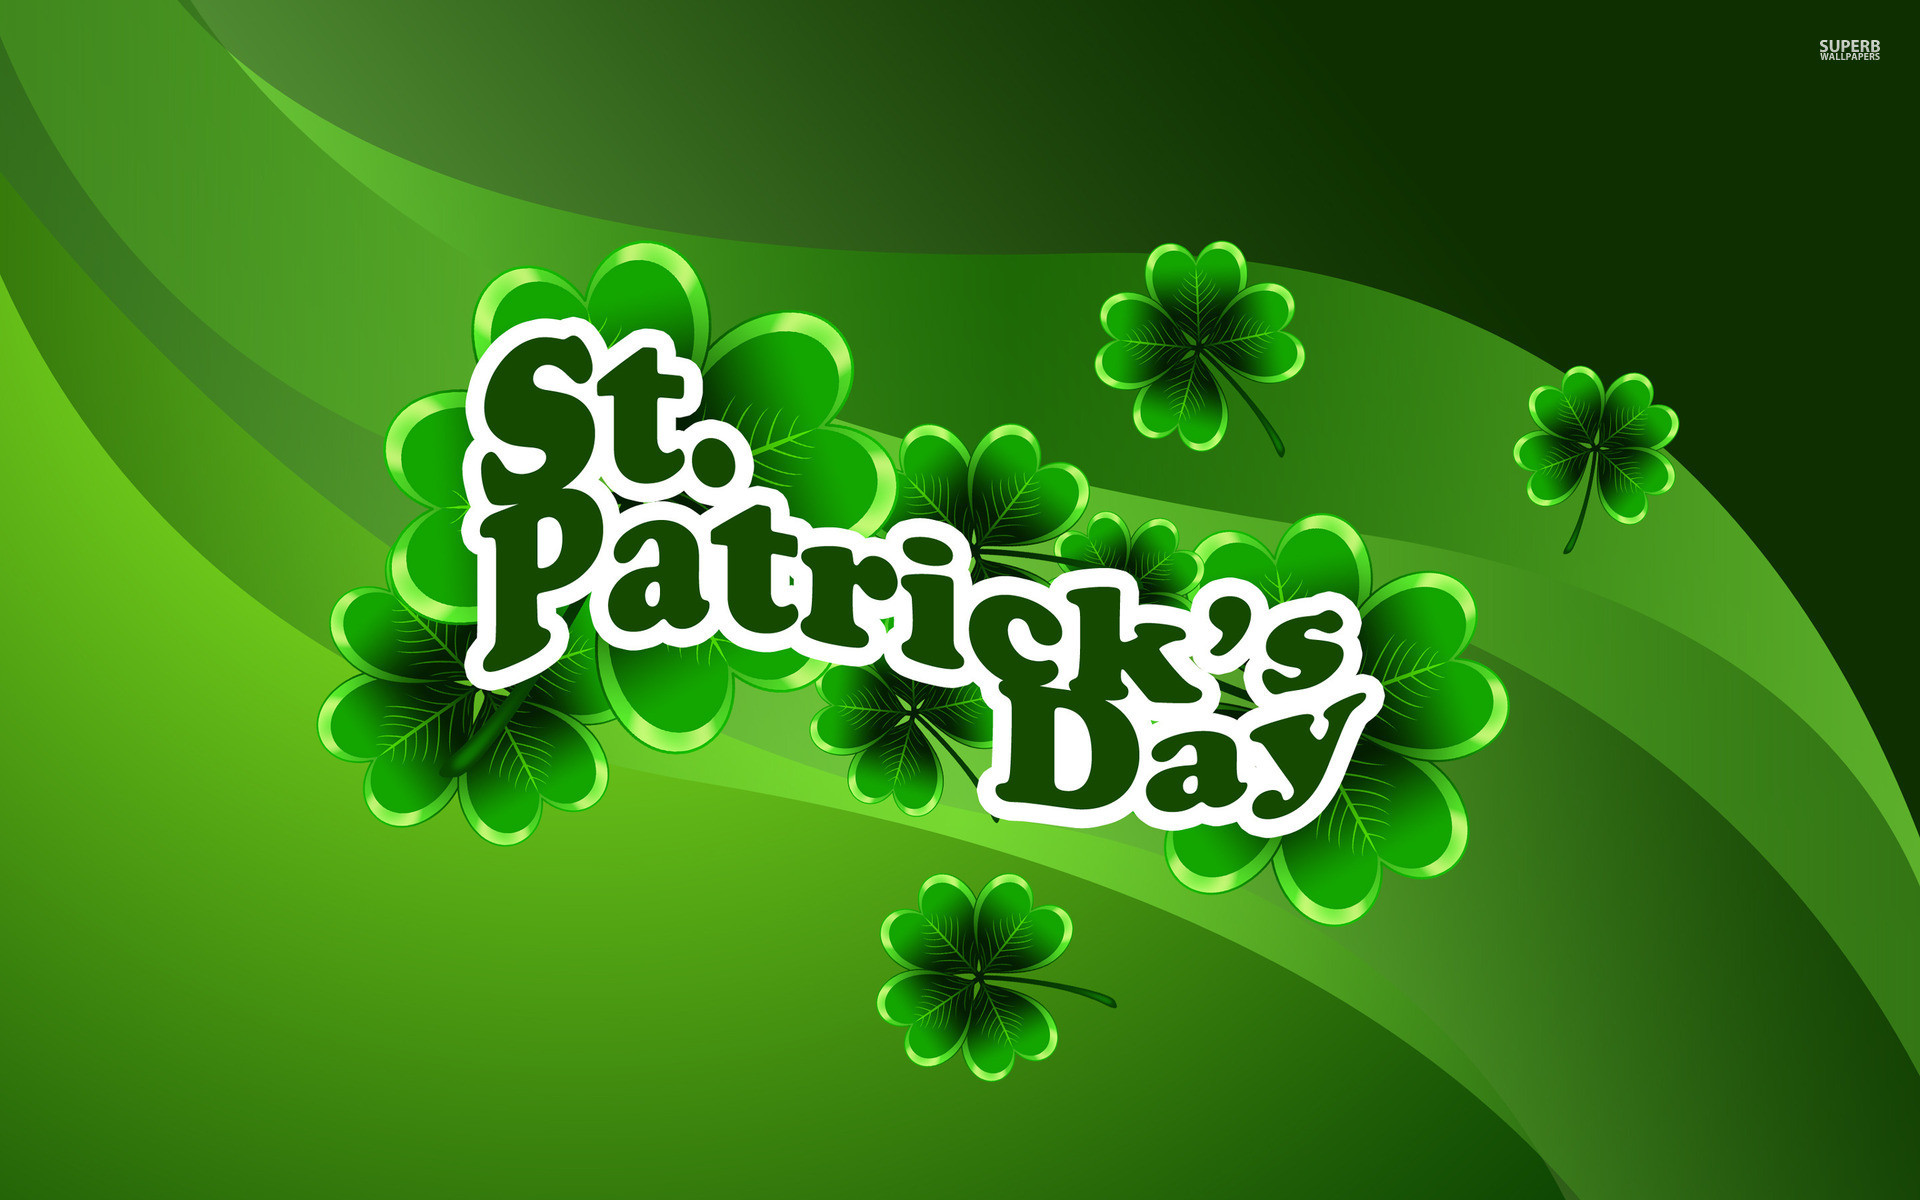 … holiday st patrick s day wallpapers desktop phone tablet …